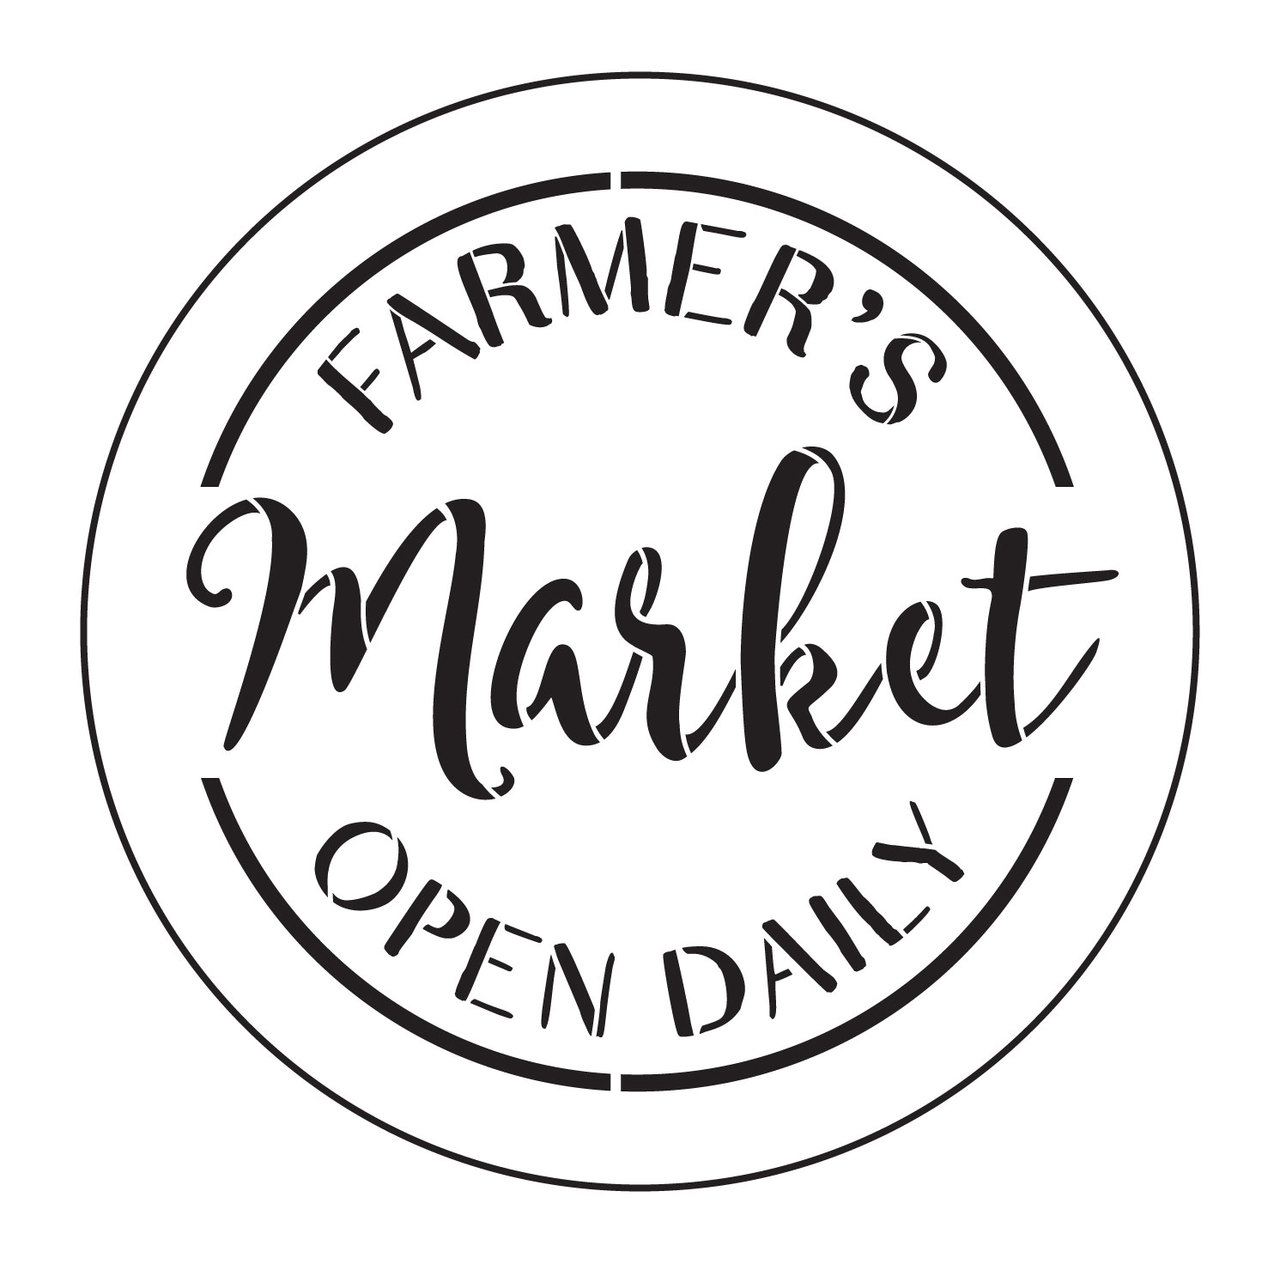 """Farmer's Market Open Daily Stencil by StudioR12 - Country Word Art - 12"""" Round - STCL2456_2"""